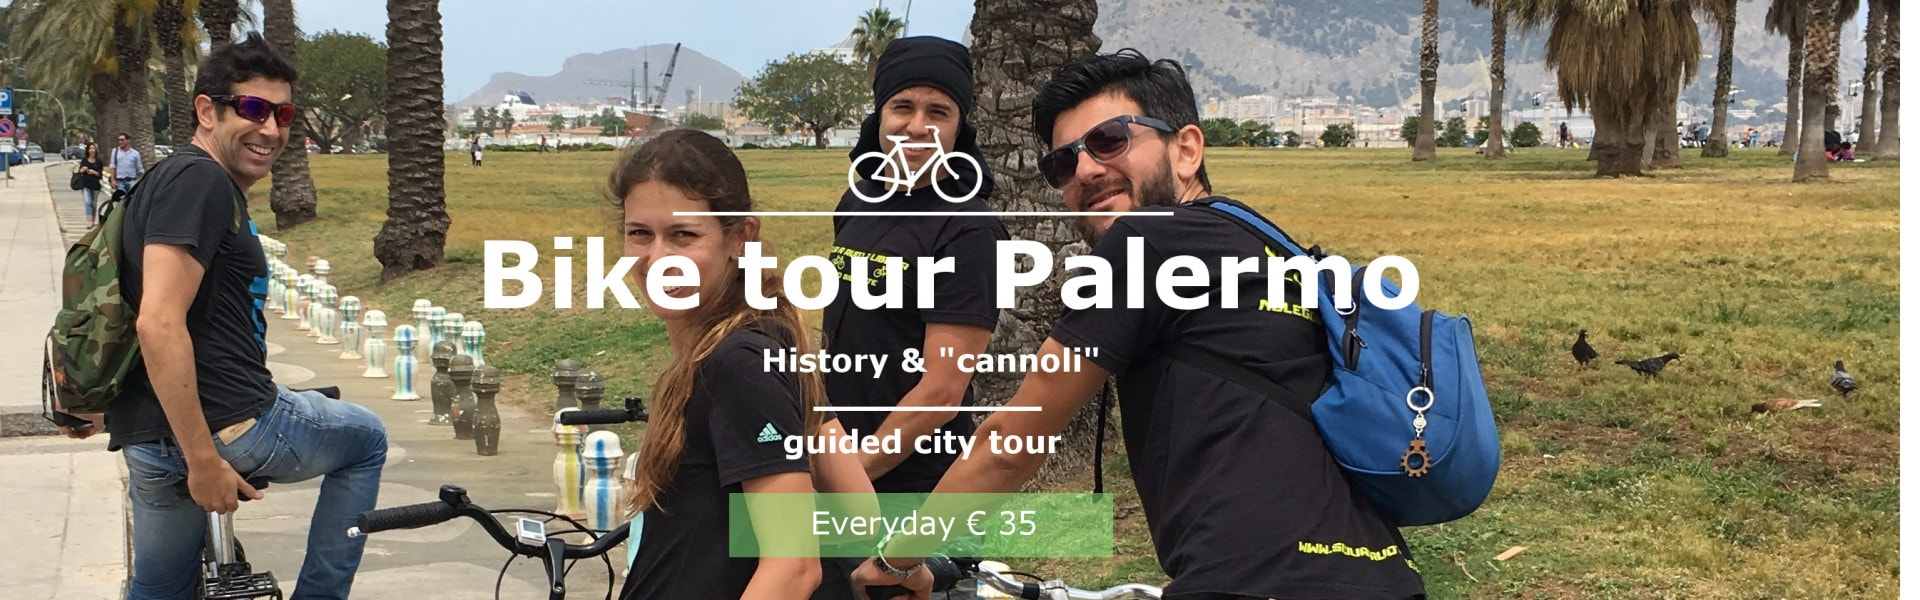 BIKE TOUR PALERMO Choosing ourbike tour Palermo you cycle with one of our comfortable bike Bianchi Spillo aroundtypical streets of the city, between baroque churches, palaces and picturesque markets that will inebriate of colors and unforgettable fragrances, or with a resistant MTB discover the landscapes suburban and you will be[...]